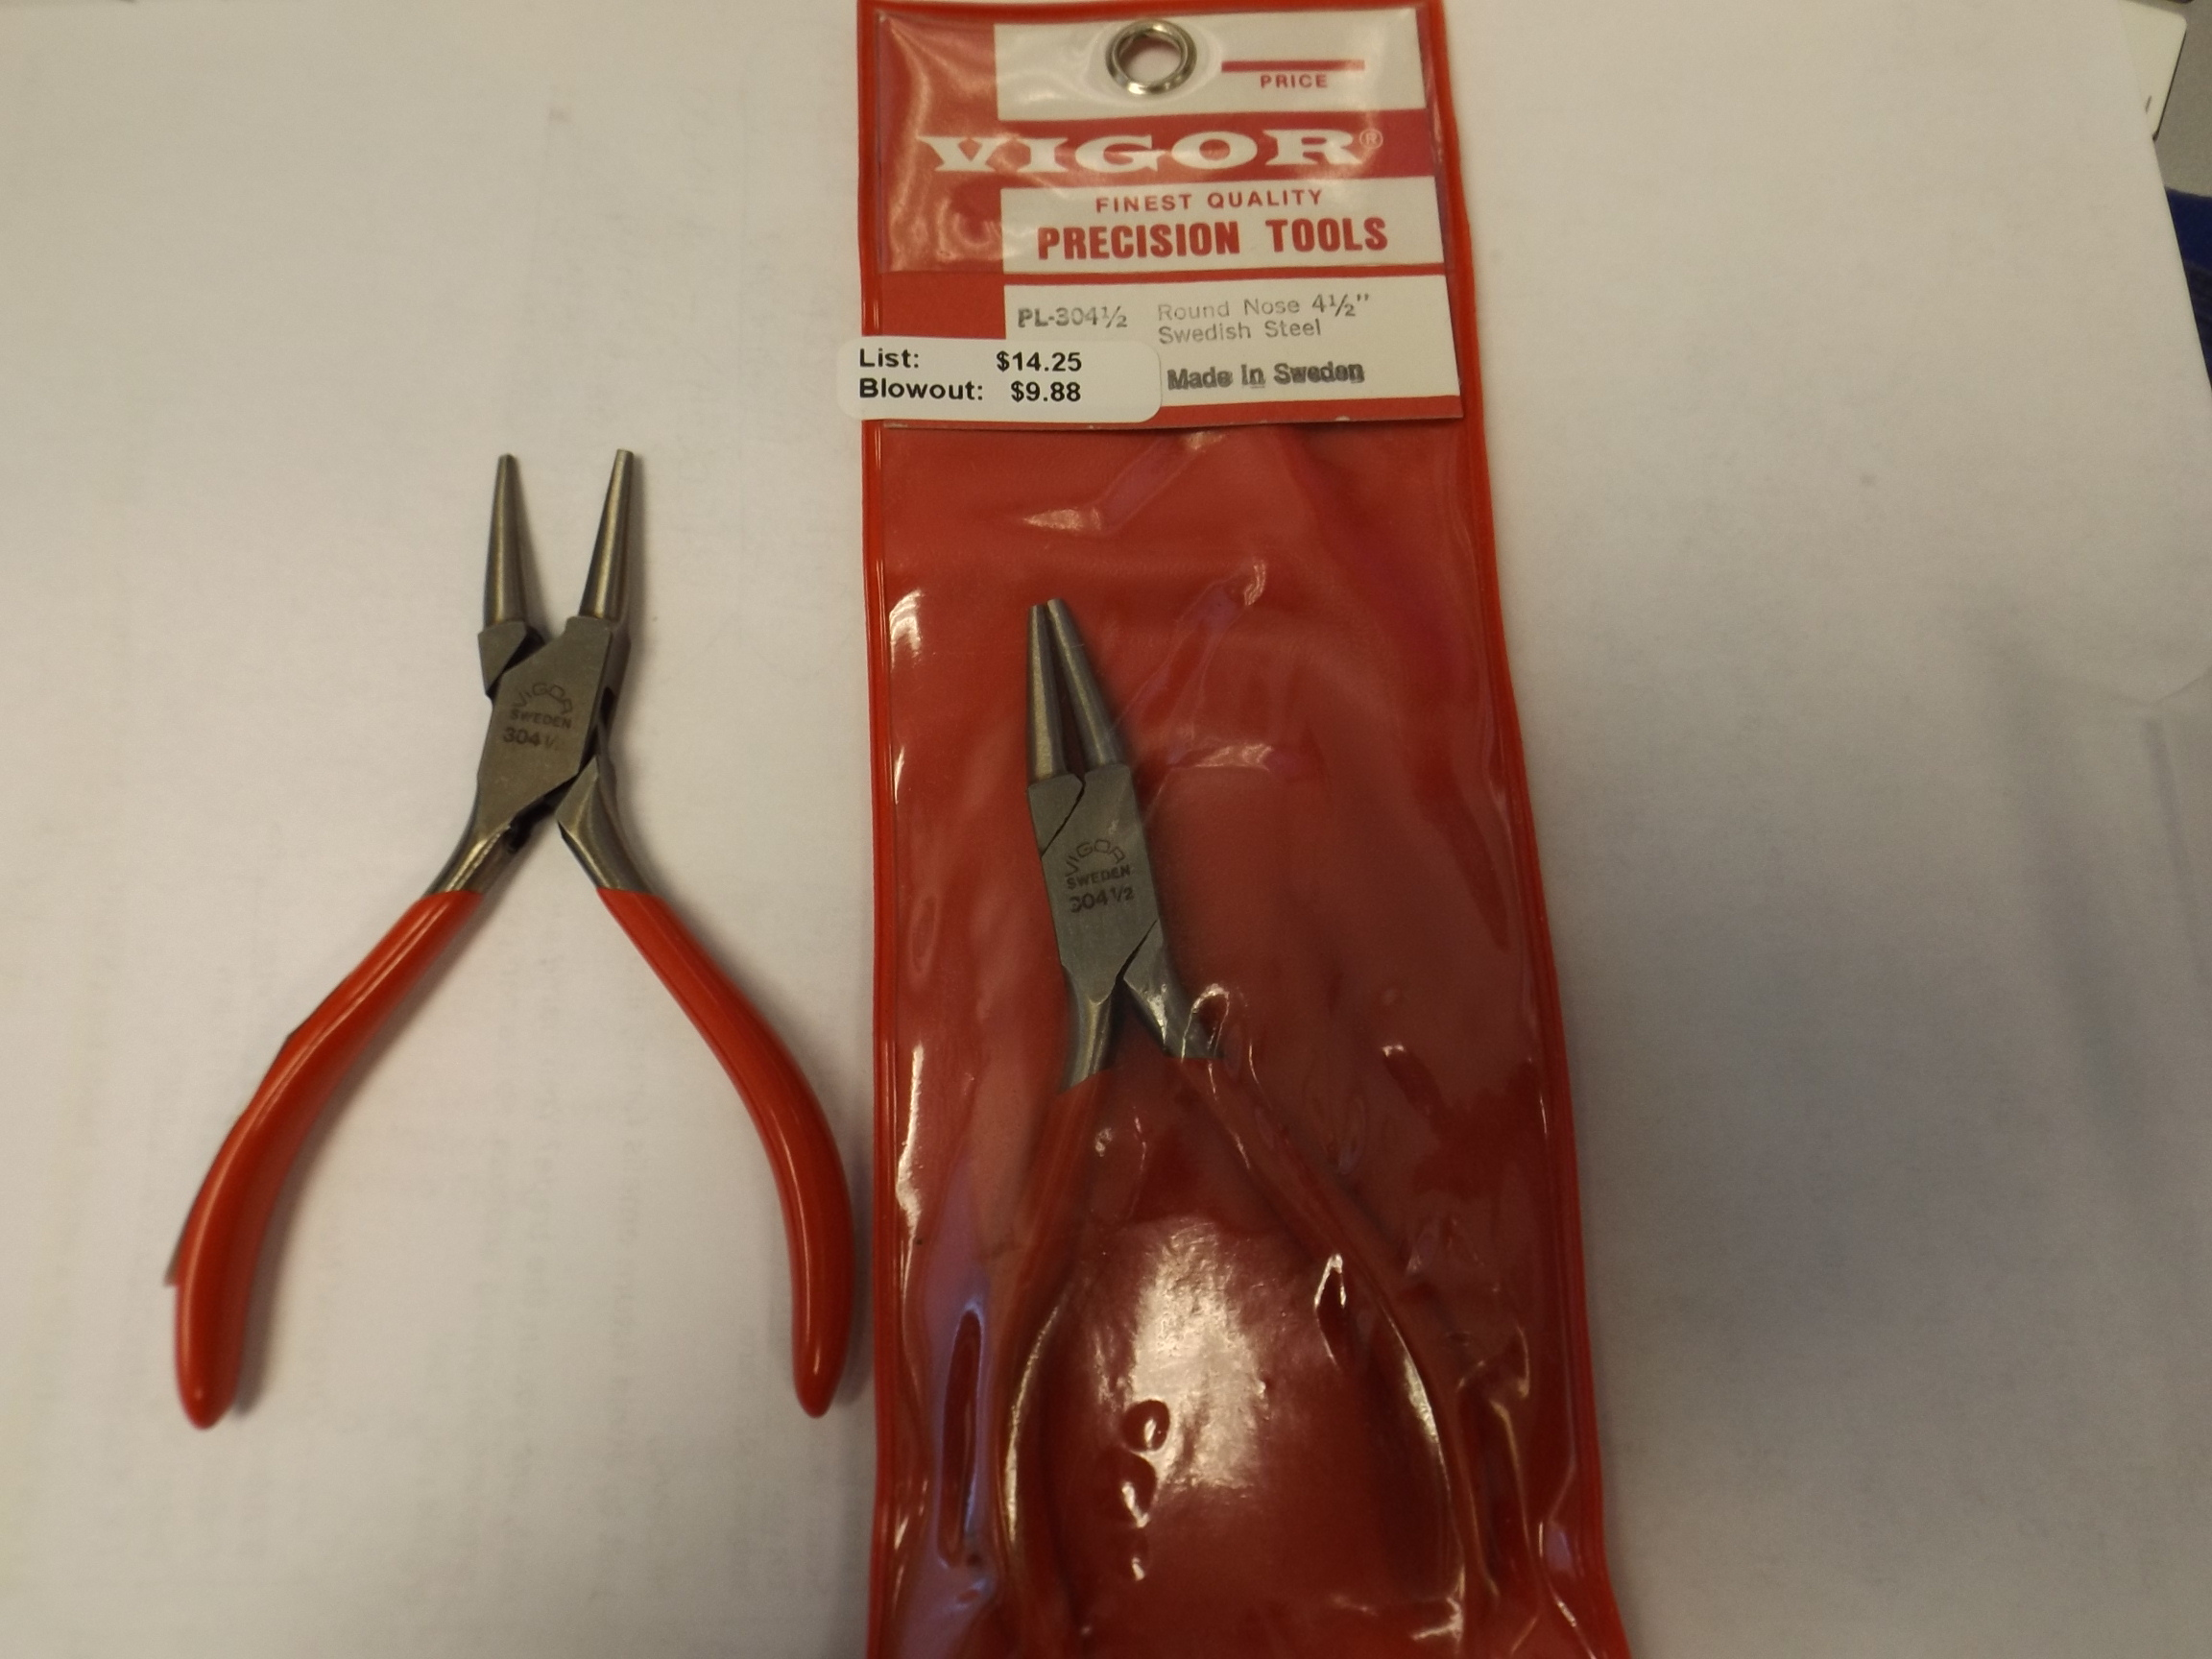 "PL304 Vigor Round Nose 4 1/2"" Swedish Steel Plier-- Blowout Item!"